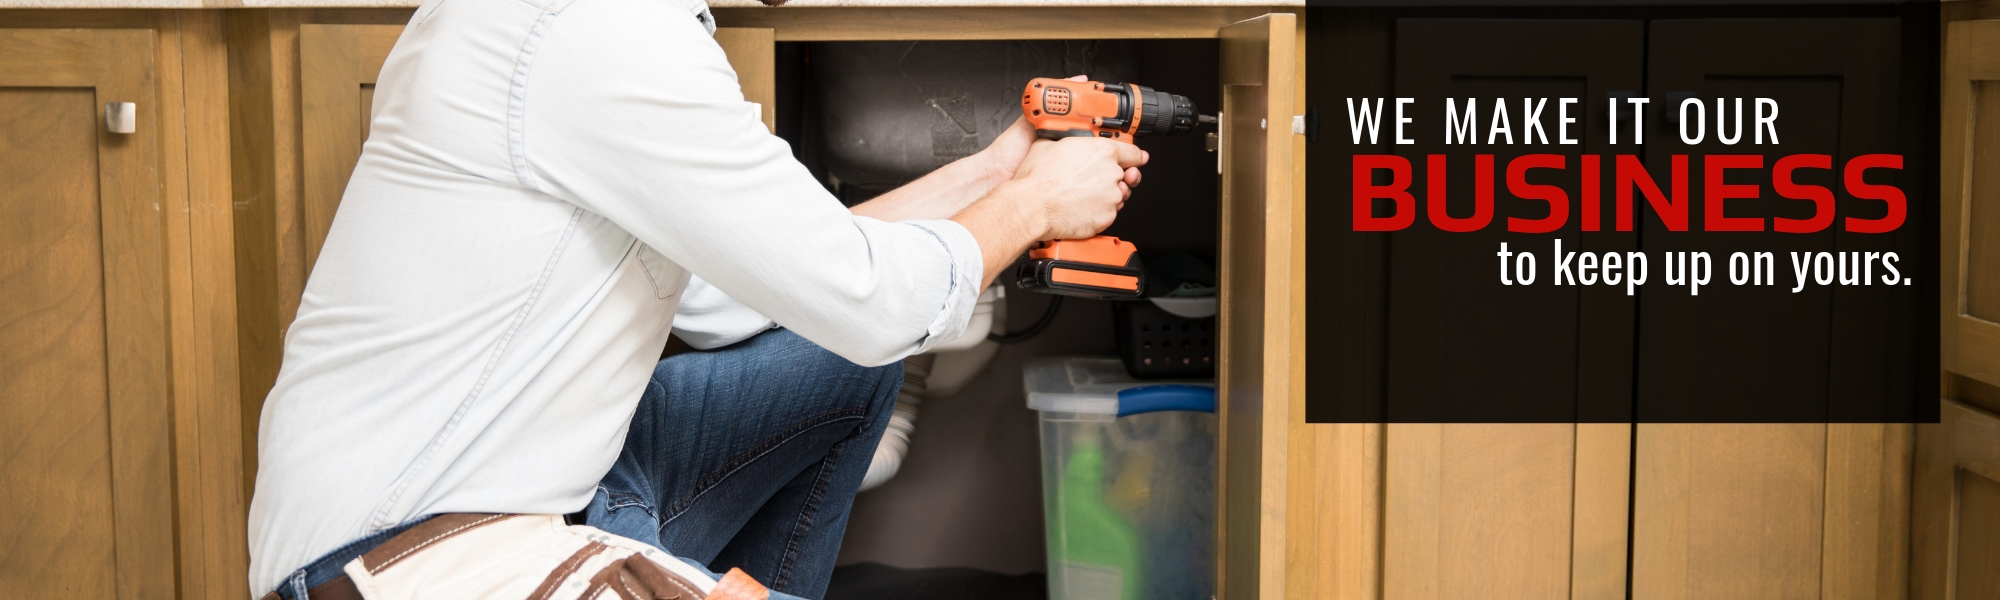 Handyman Services - We make it our business to keep up on yours!